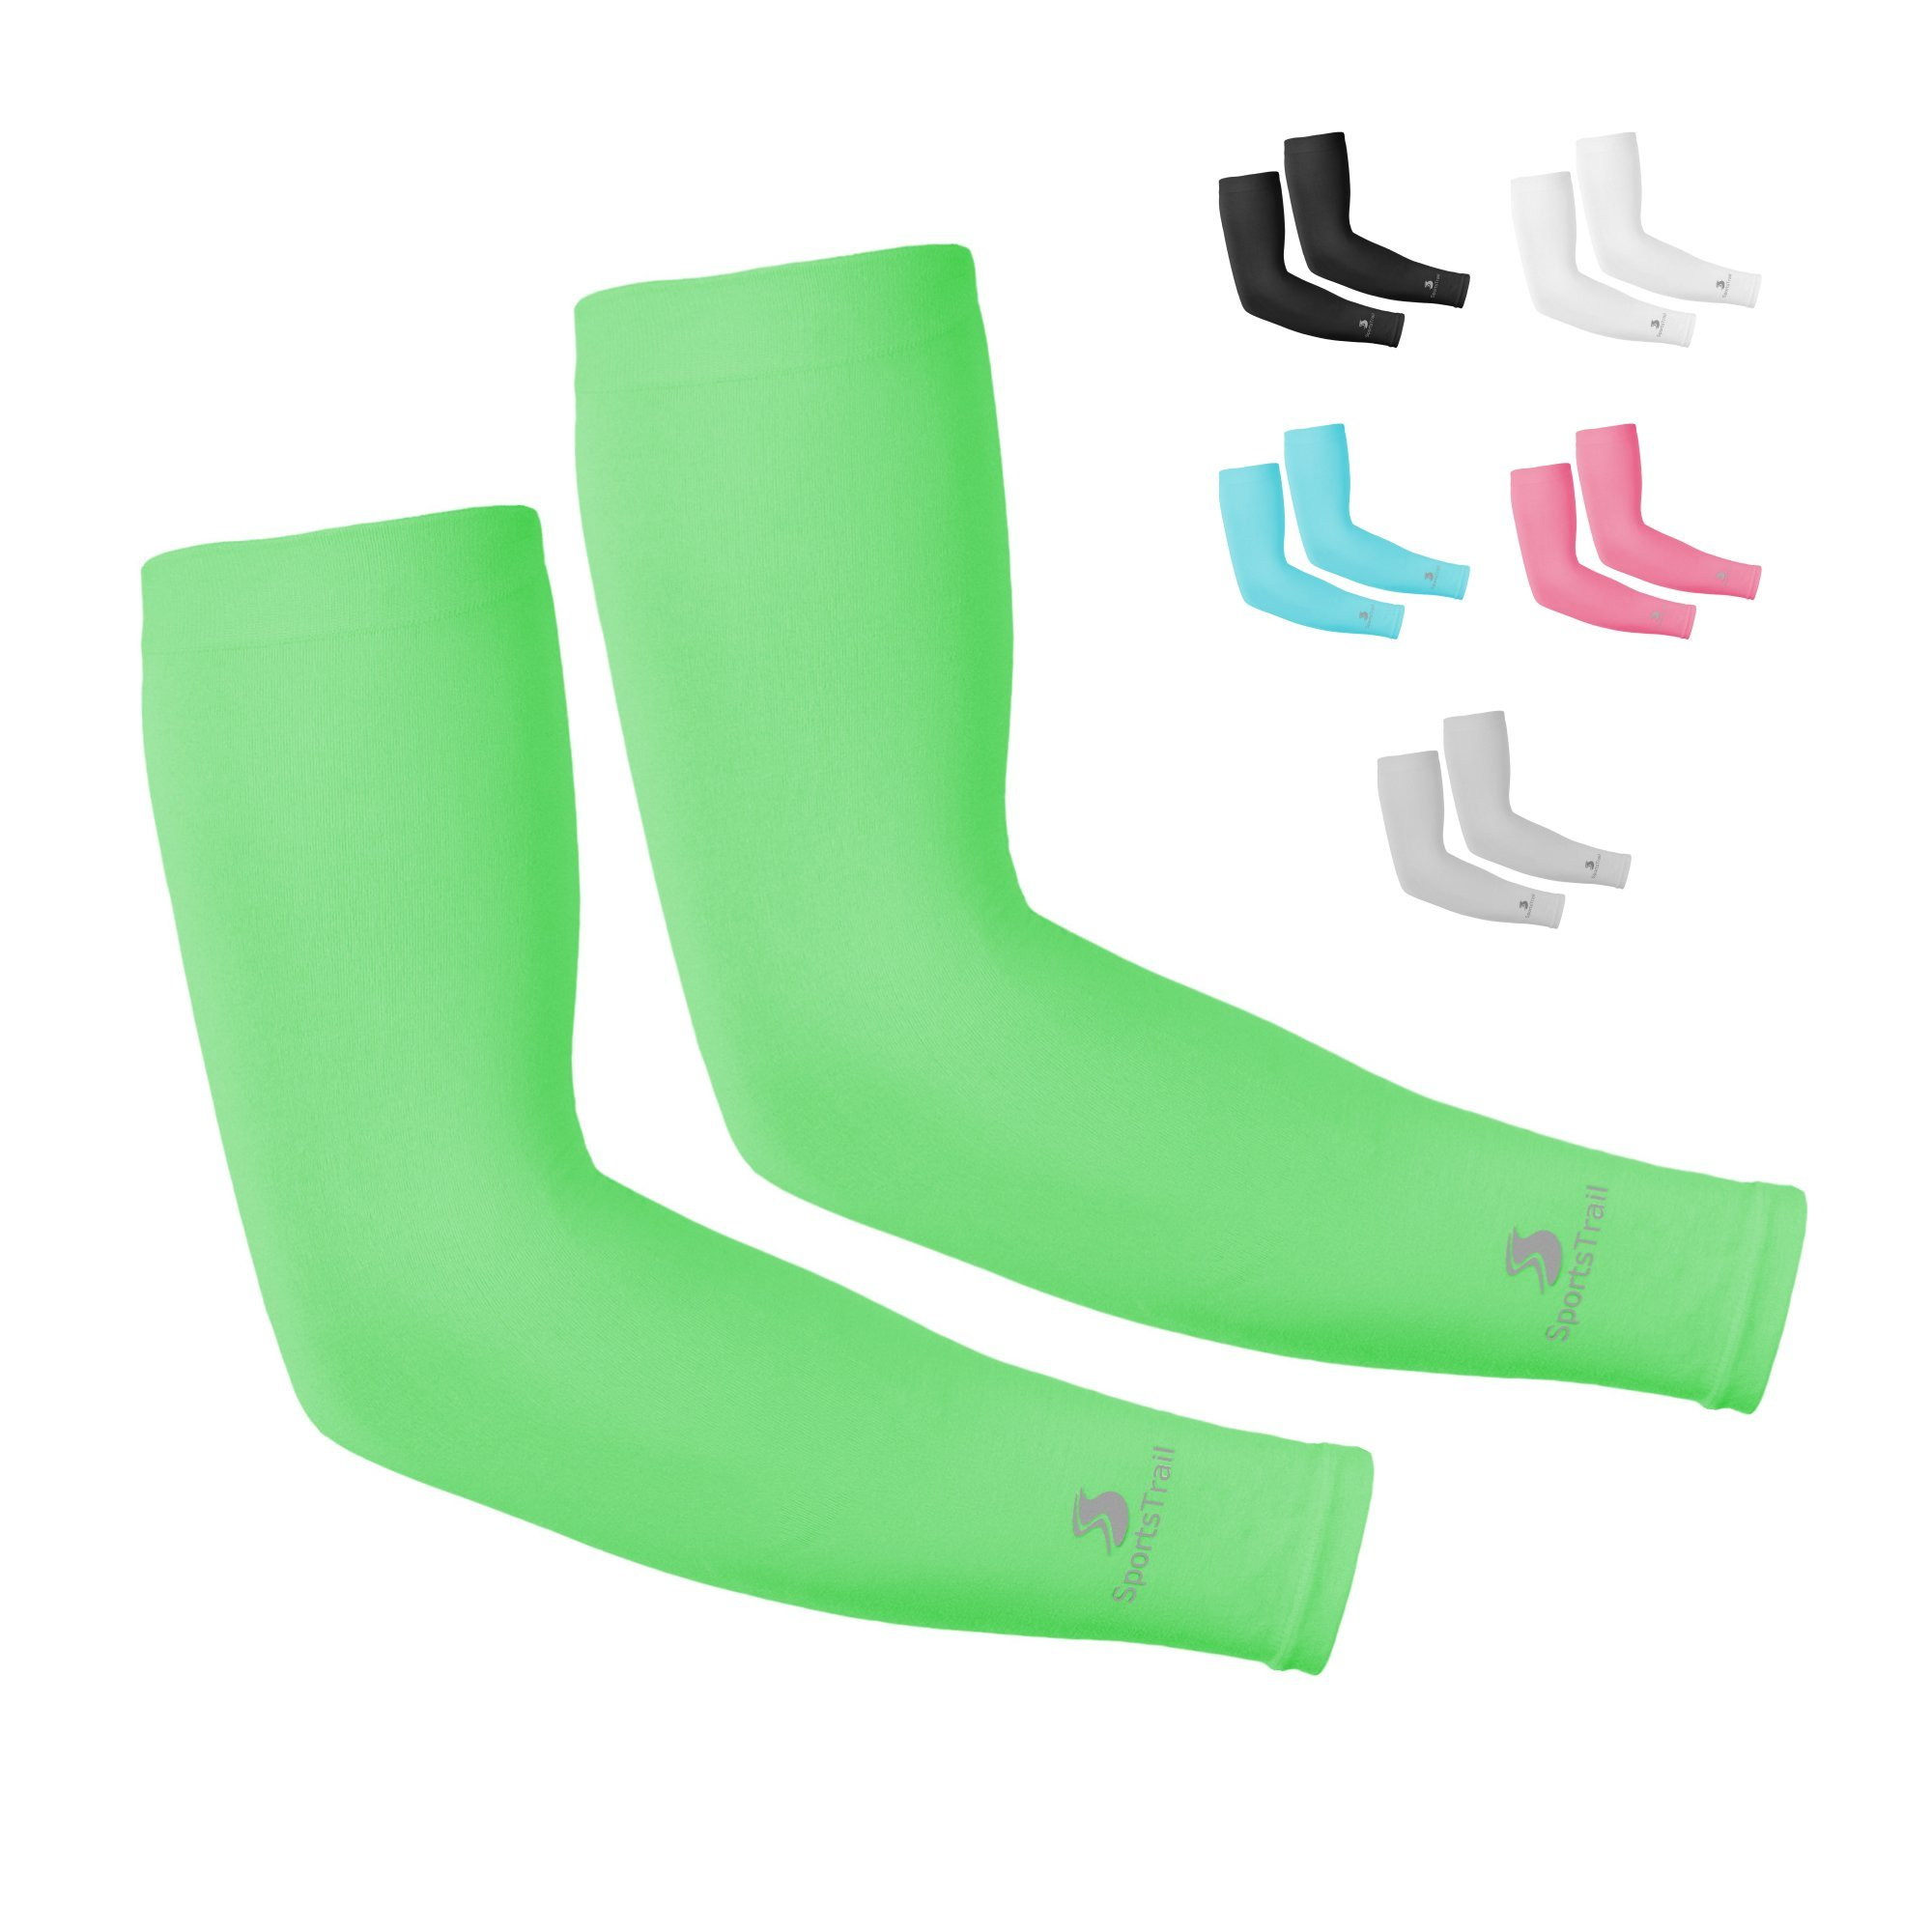 SportsTrail Arm Sleeves for Men & Women, Tatoo Cover up Sleeves to Cover Arms, 1 Pair (Green)